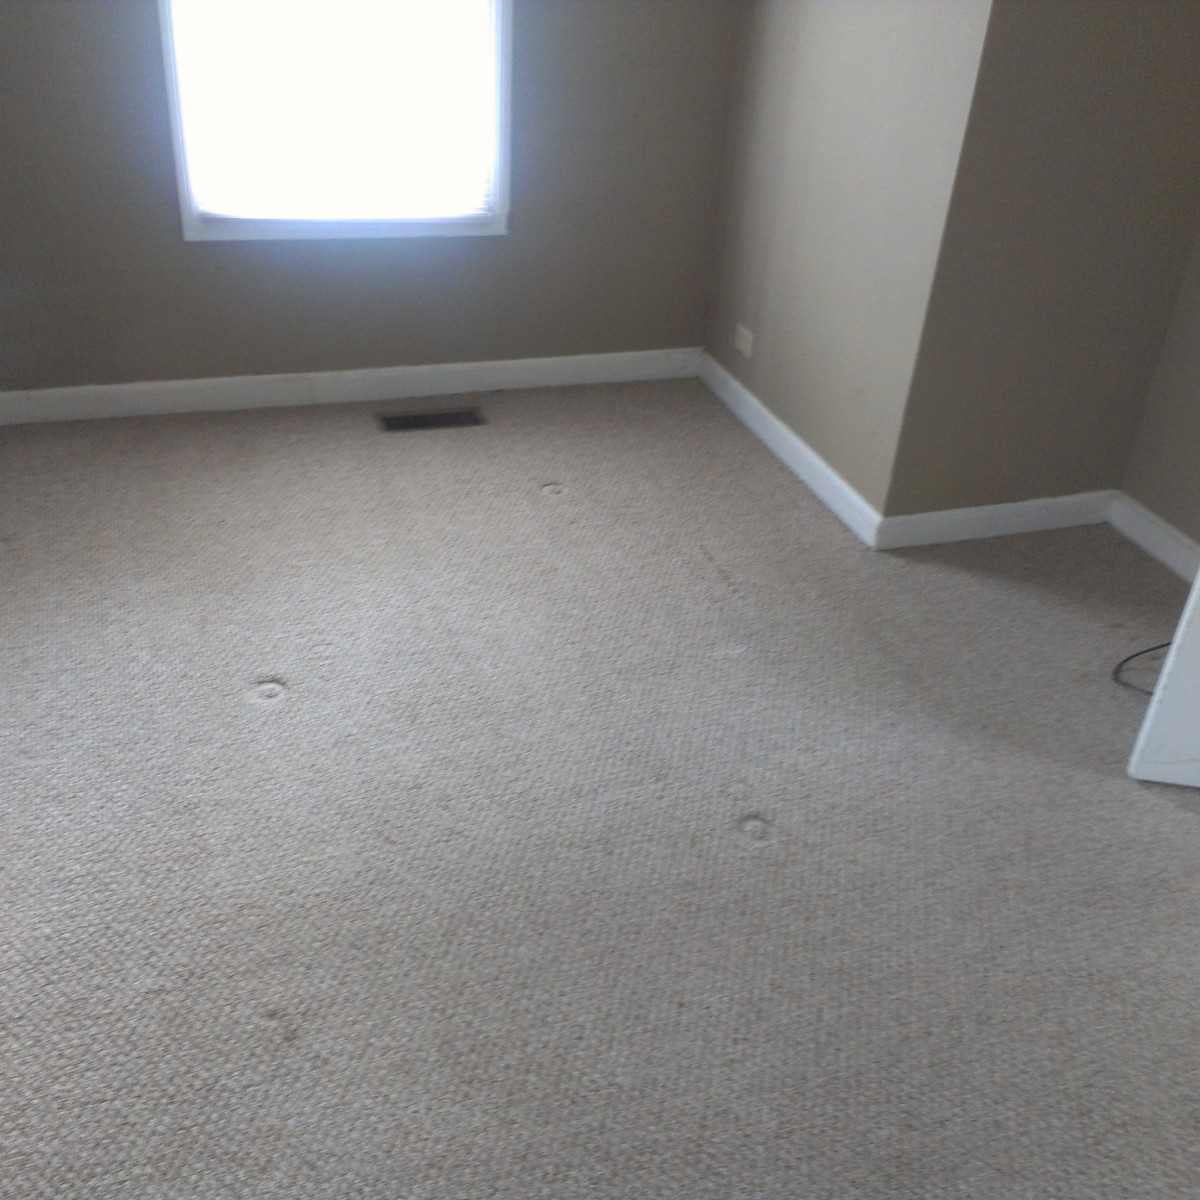 macon ga apartment for lease